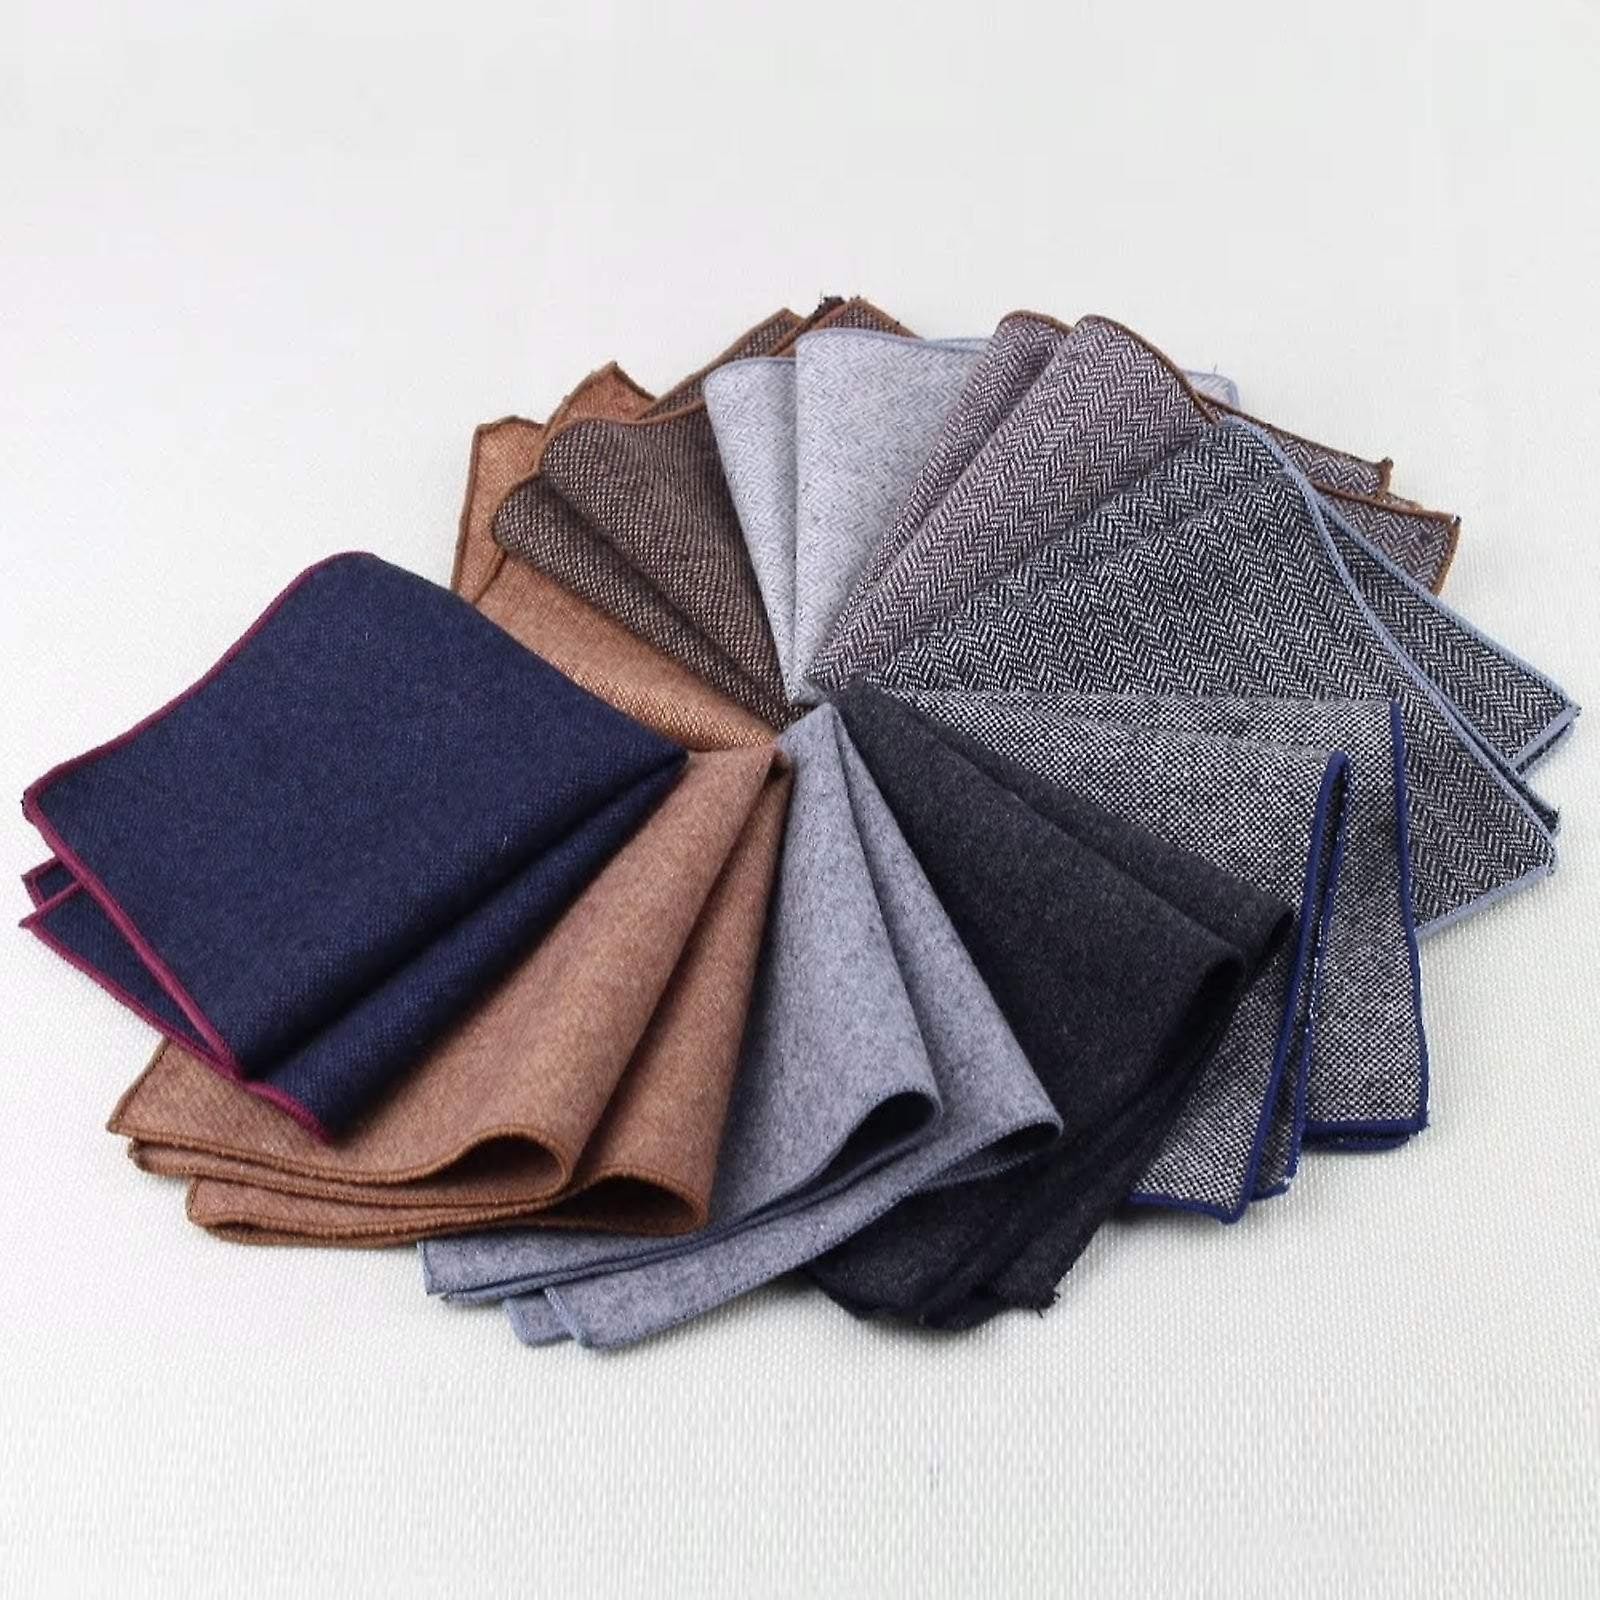 Rough texture purple thick tweed wool pocket square